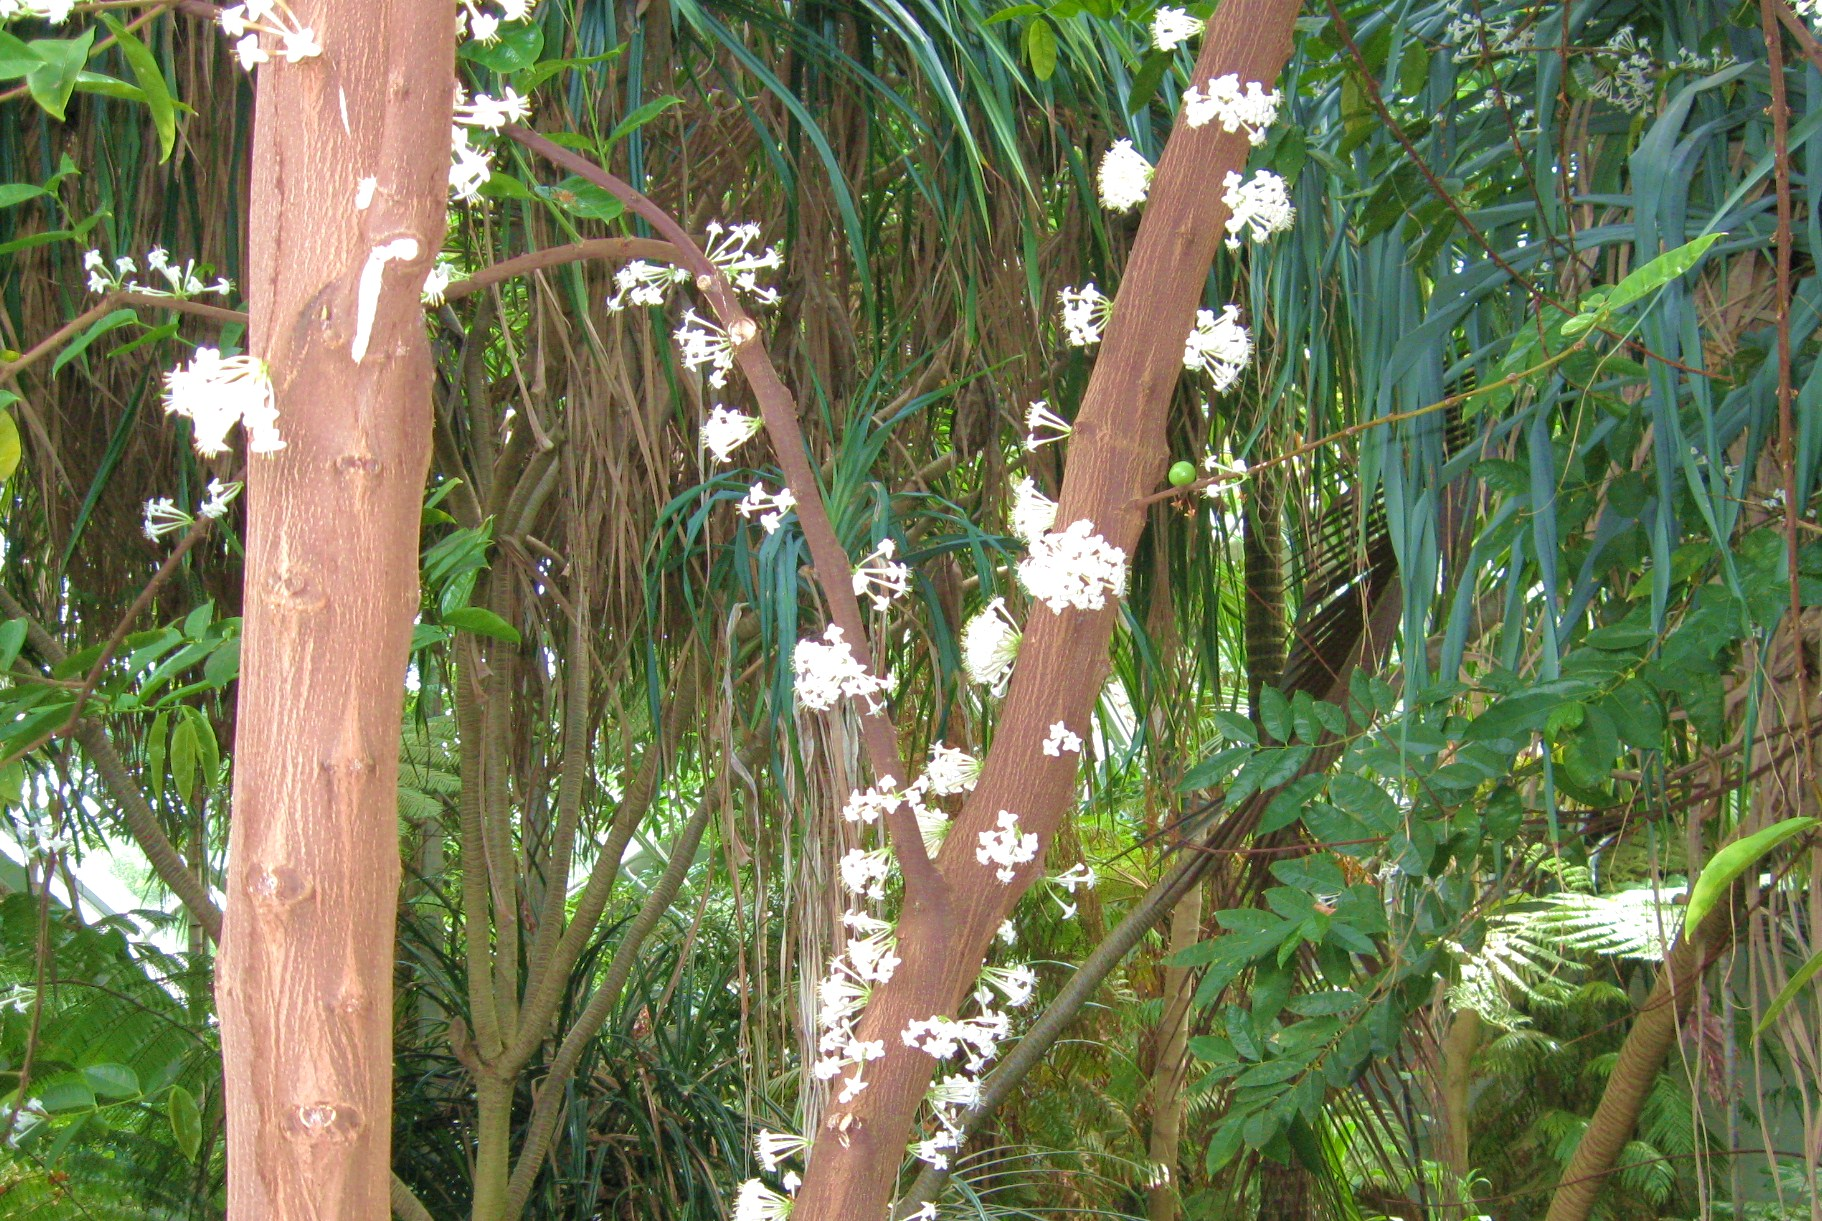 A blossoming tree trunk: Phaleria